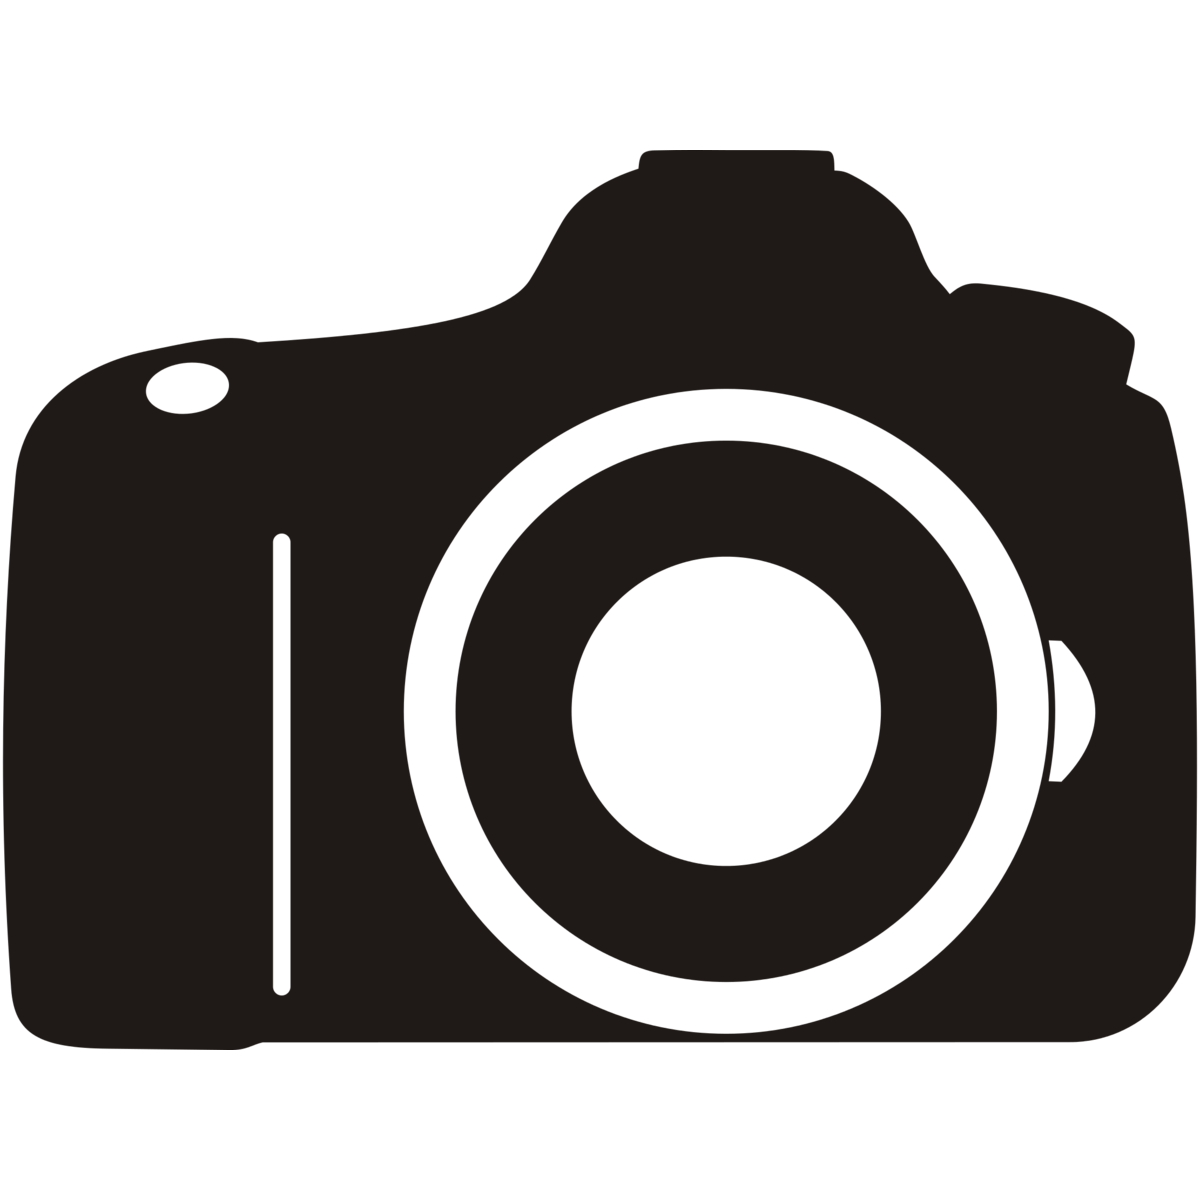 download logo photography camera symbol download hd png hq png image freepngimg download logo photography camera symbol